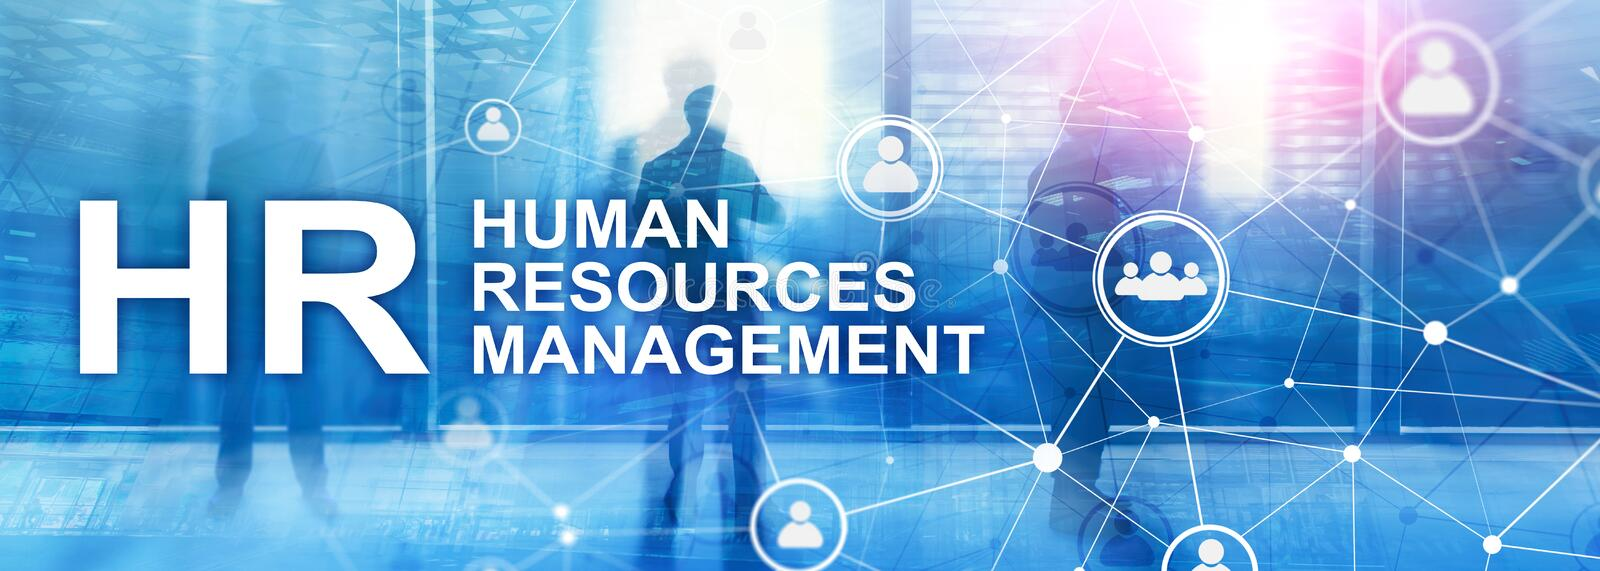 Human resource management, HR, Team Building and recruitment concept on blurred background.  stock photography